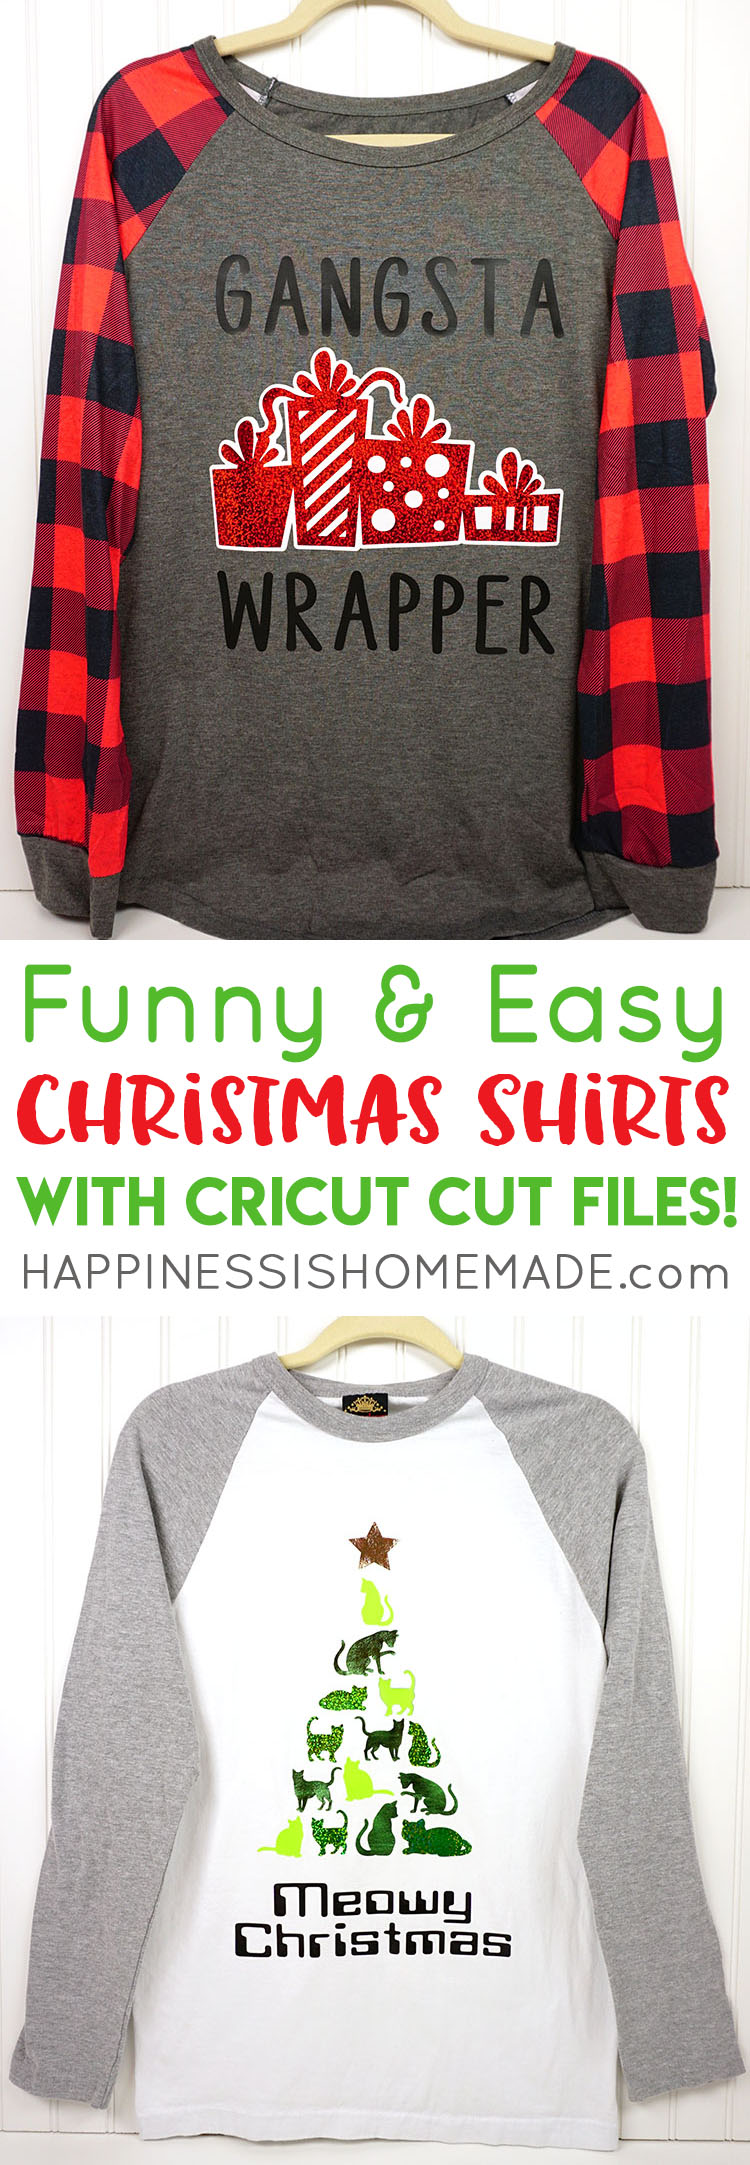 Funny Christmas Shirts With Cricut Cut Files Happiness Is Homemade